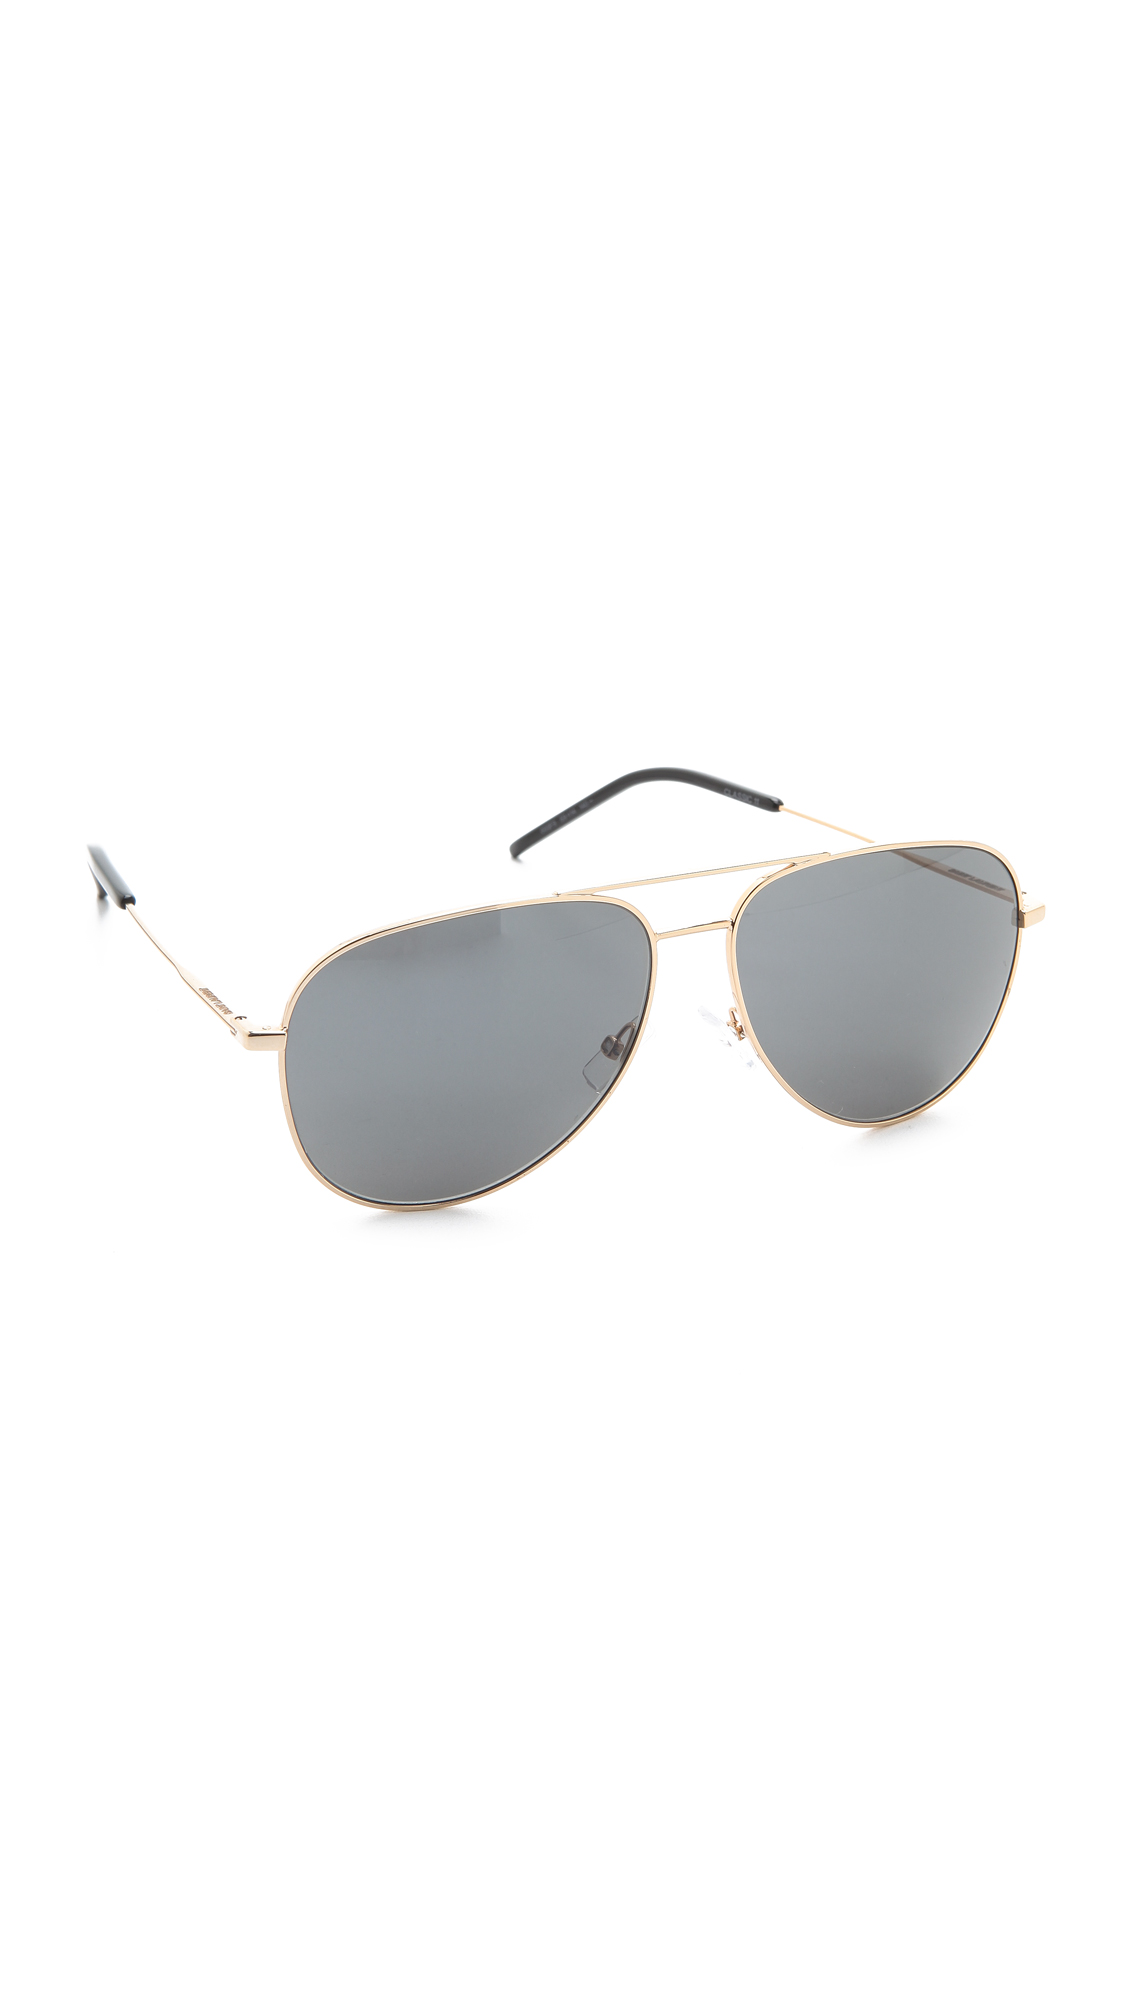 1fef361a4940d Saint Laurent Classic Metal Aviator Sunglasses